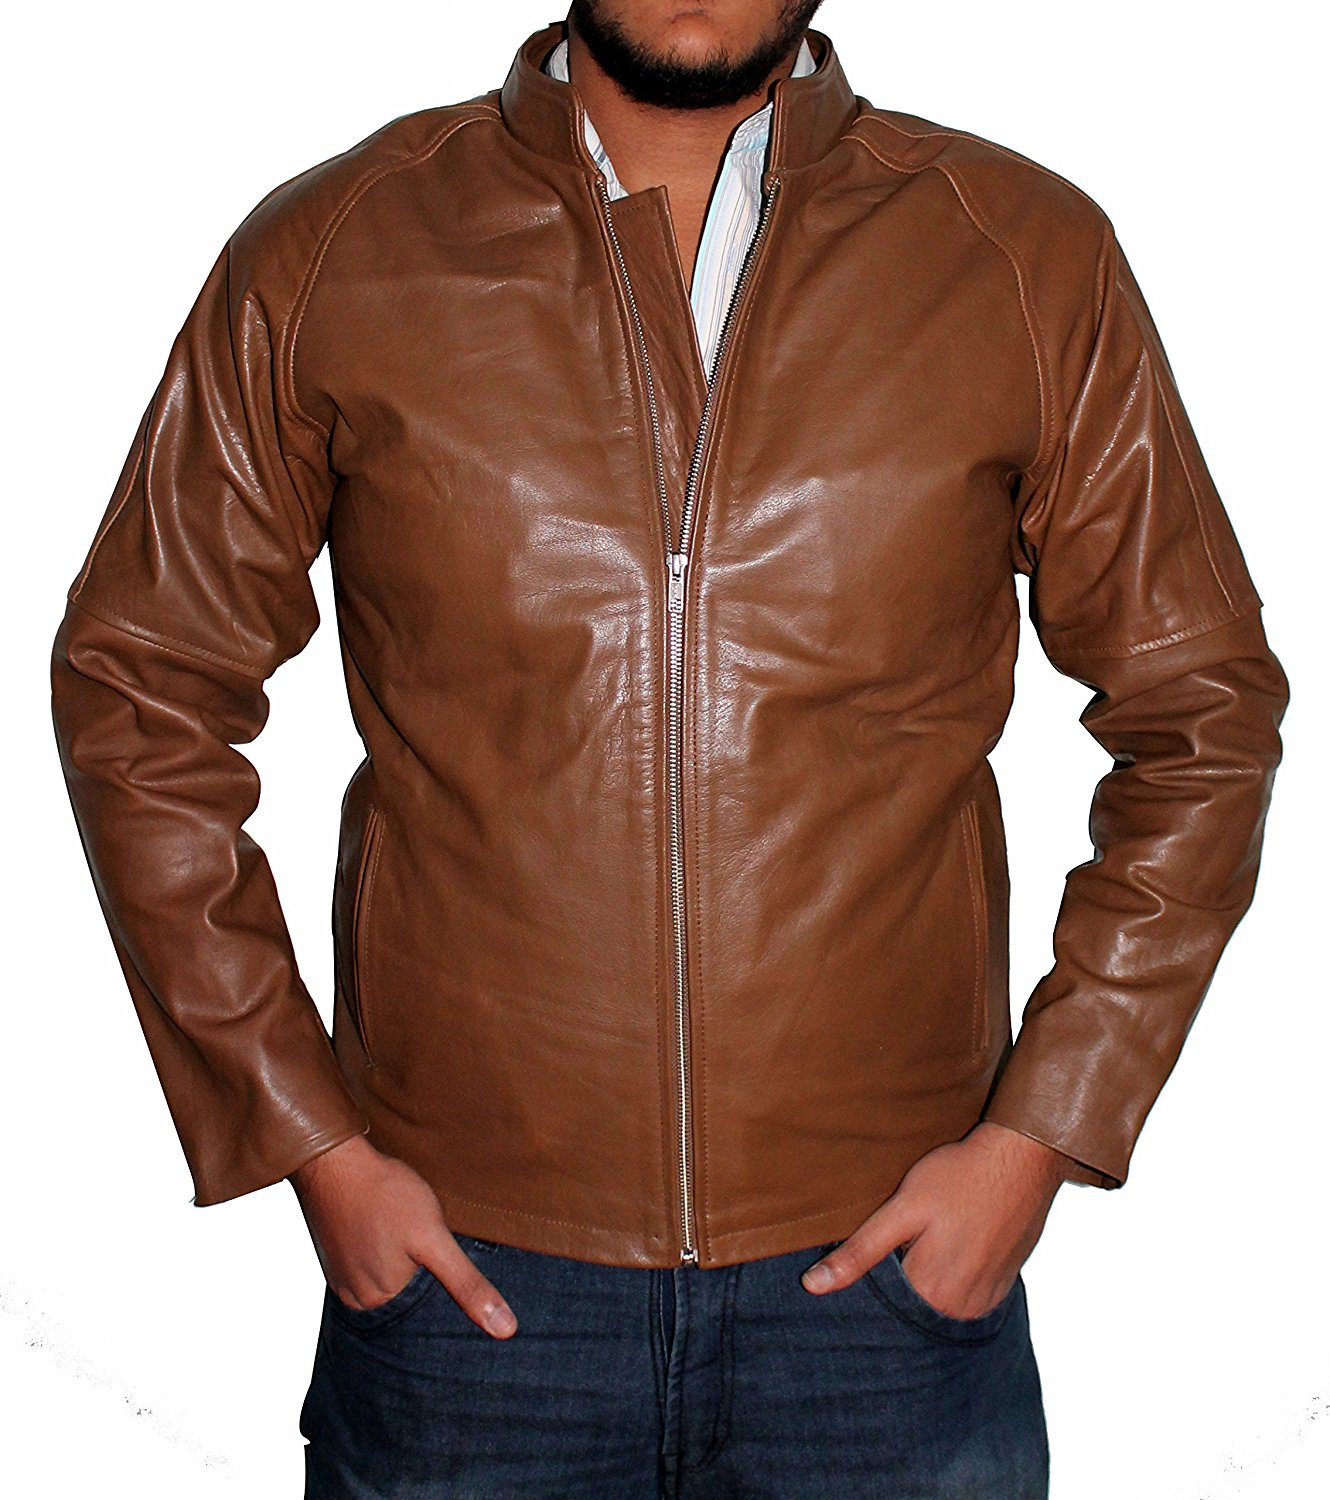 ... Urban Outfitters Mens Leather Jackets were worn just when essential fd7c29775